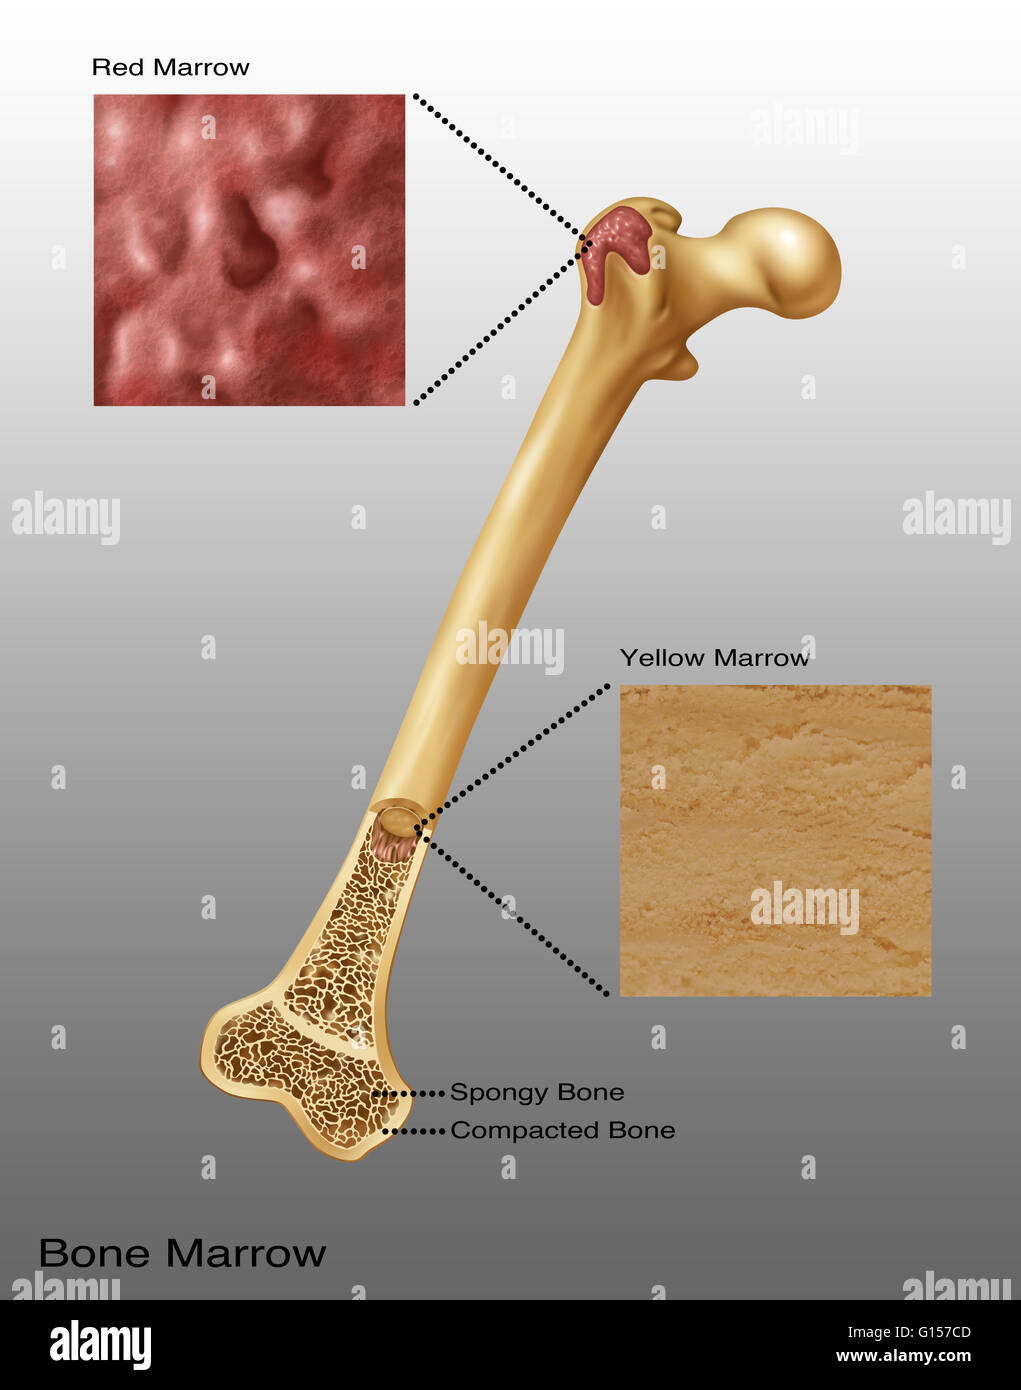 Illustration of bone marrow. Top diagram shows red bone ...